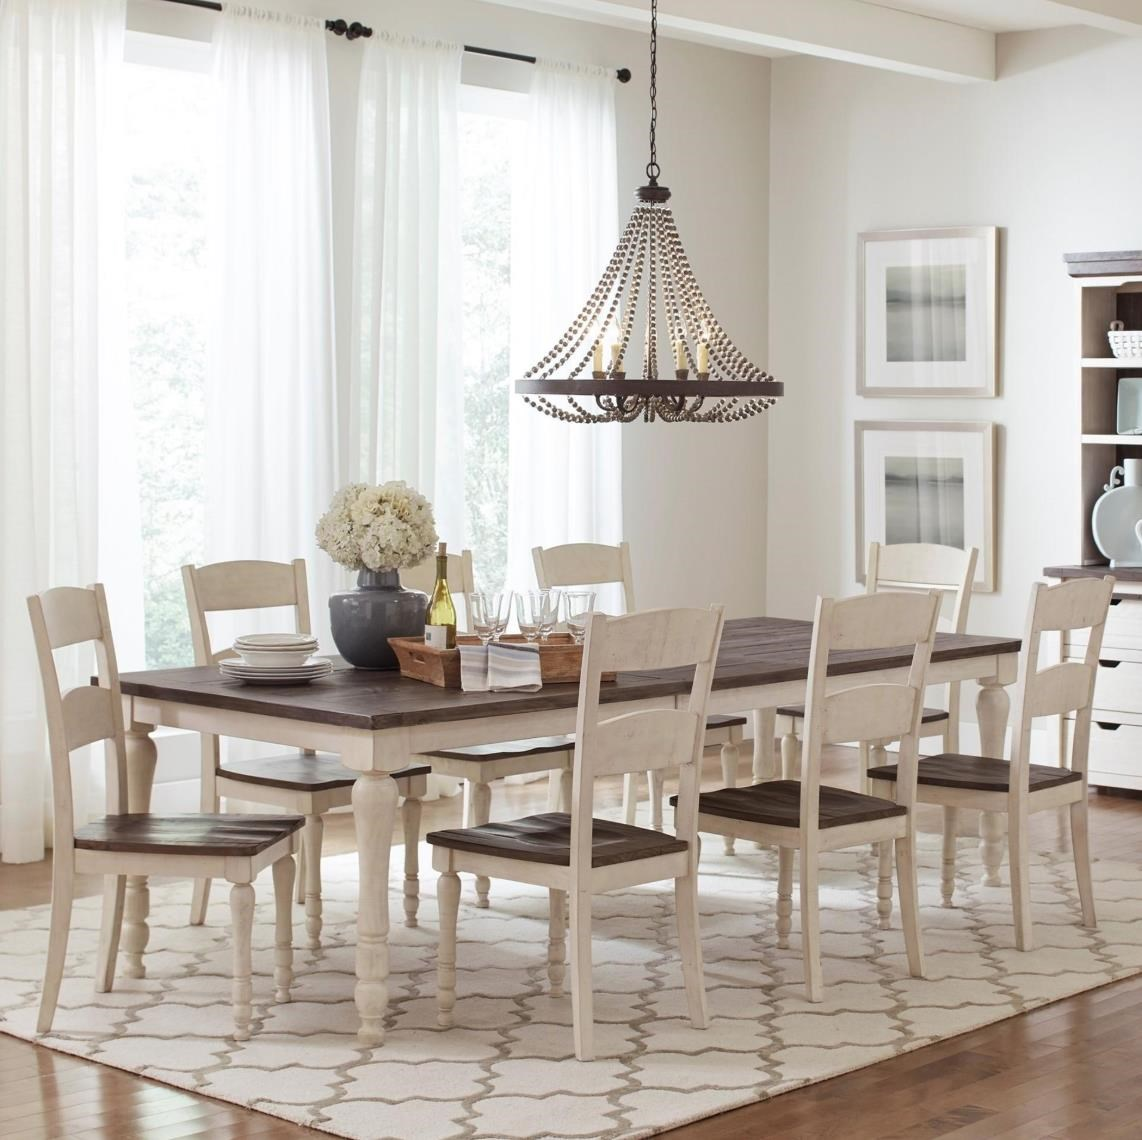 Rectangular Table and 8 Chairs